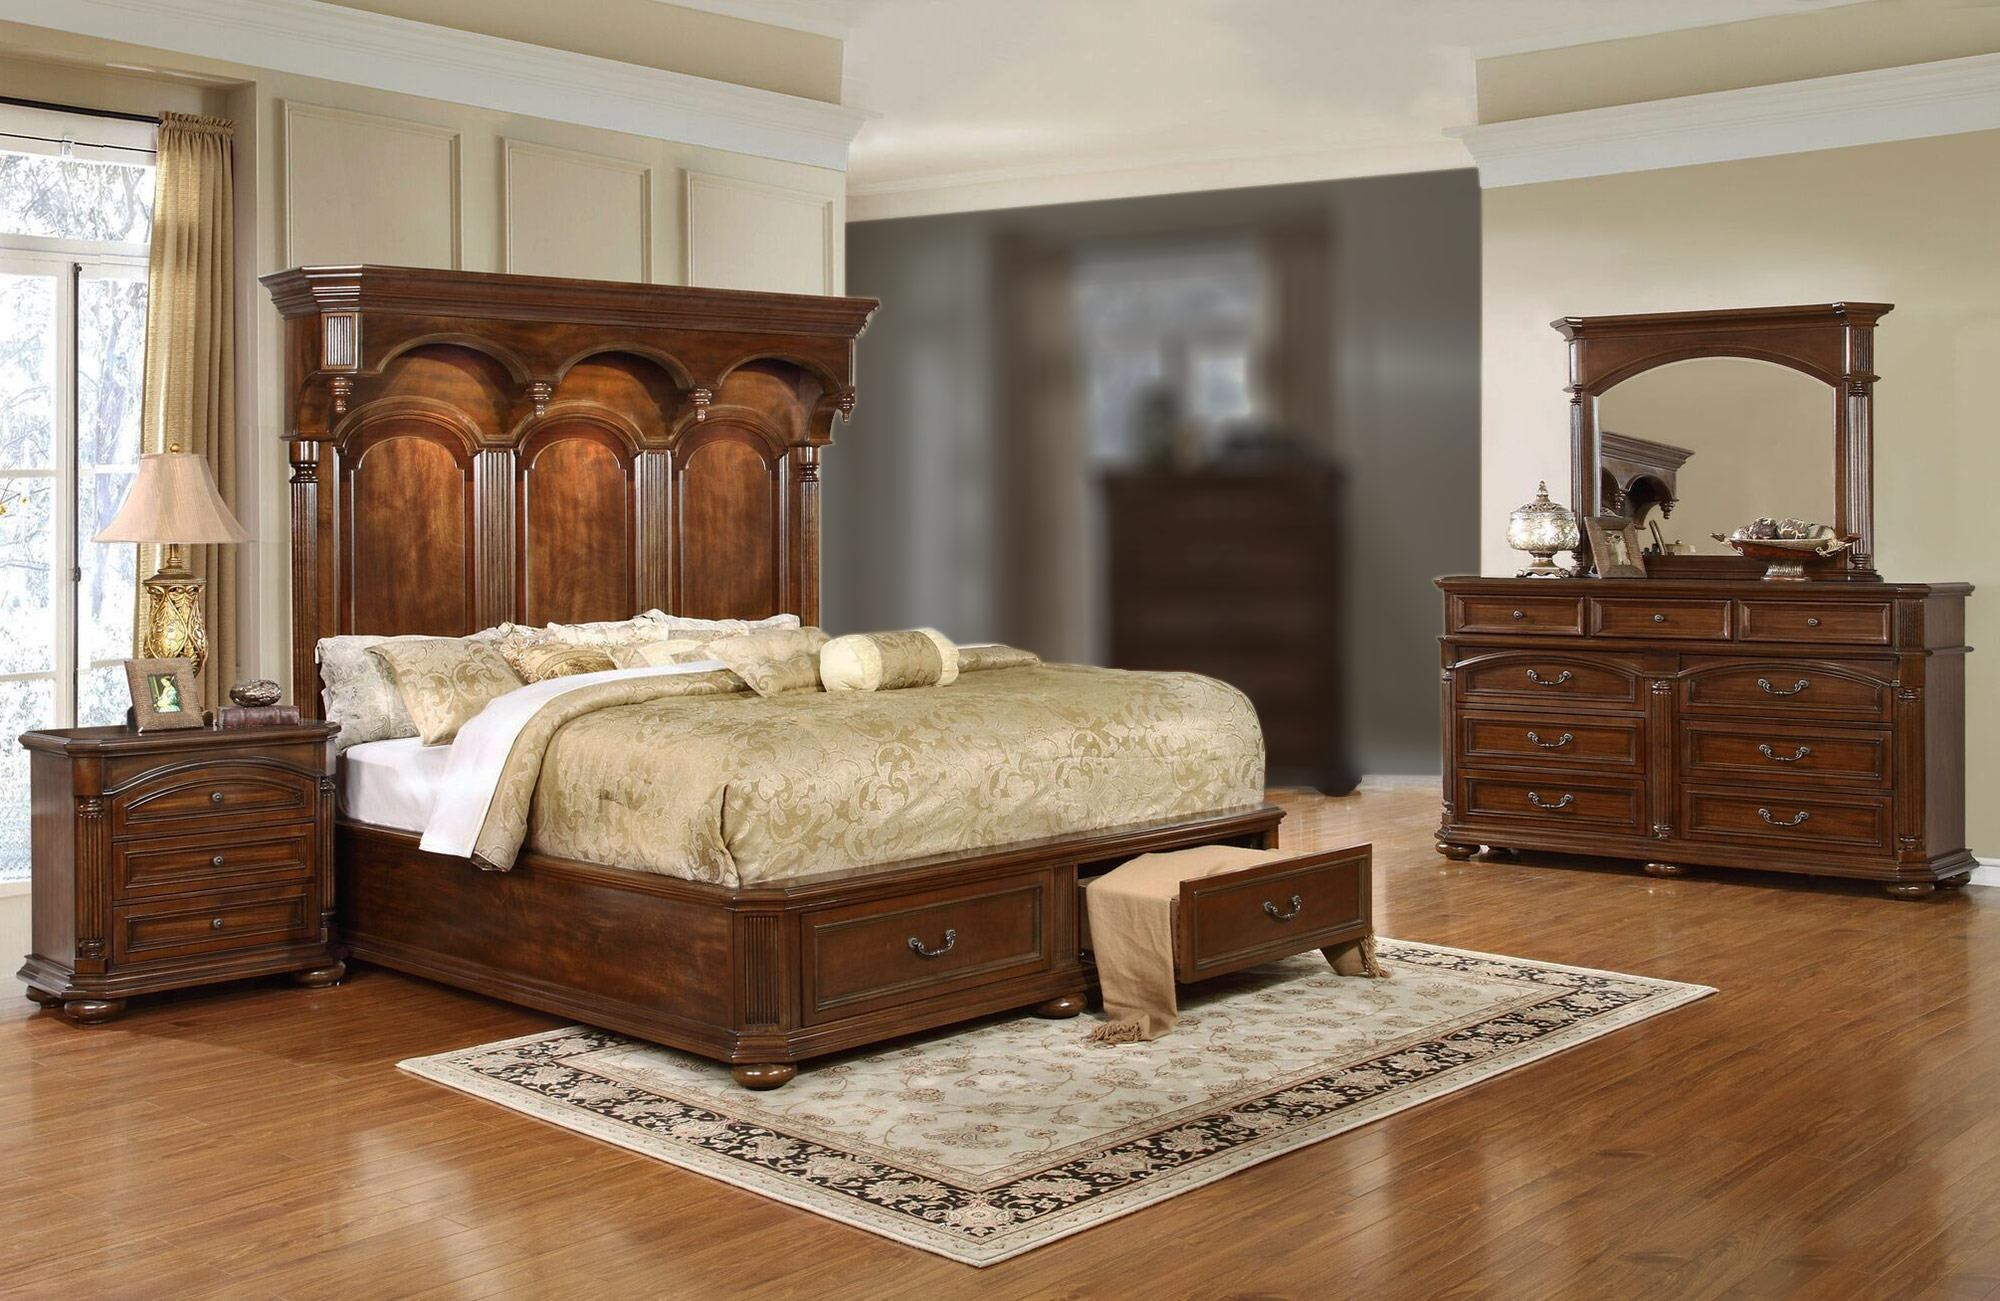 Lifestyle Empire 4PC Queen Storage Bedroom Set - Item Number: C6258A-4PC-QBR